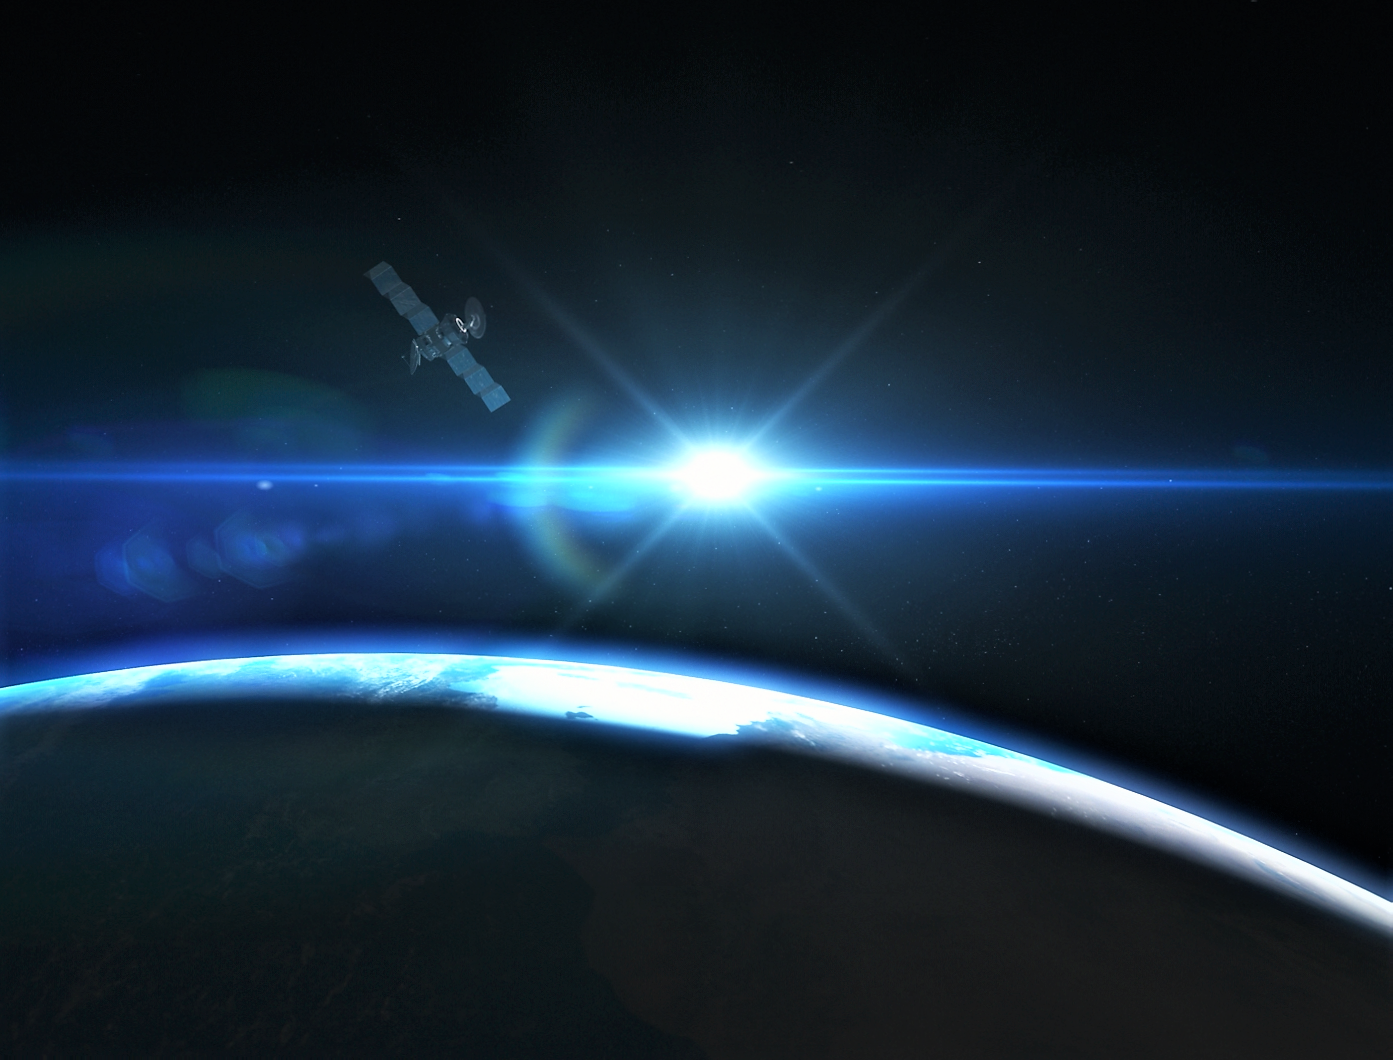 Microsoft partners with SpaceX's Starlink satellite service for Azure Space cloud platform